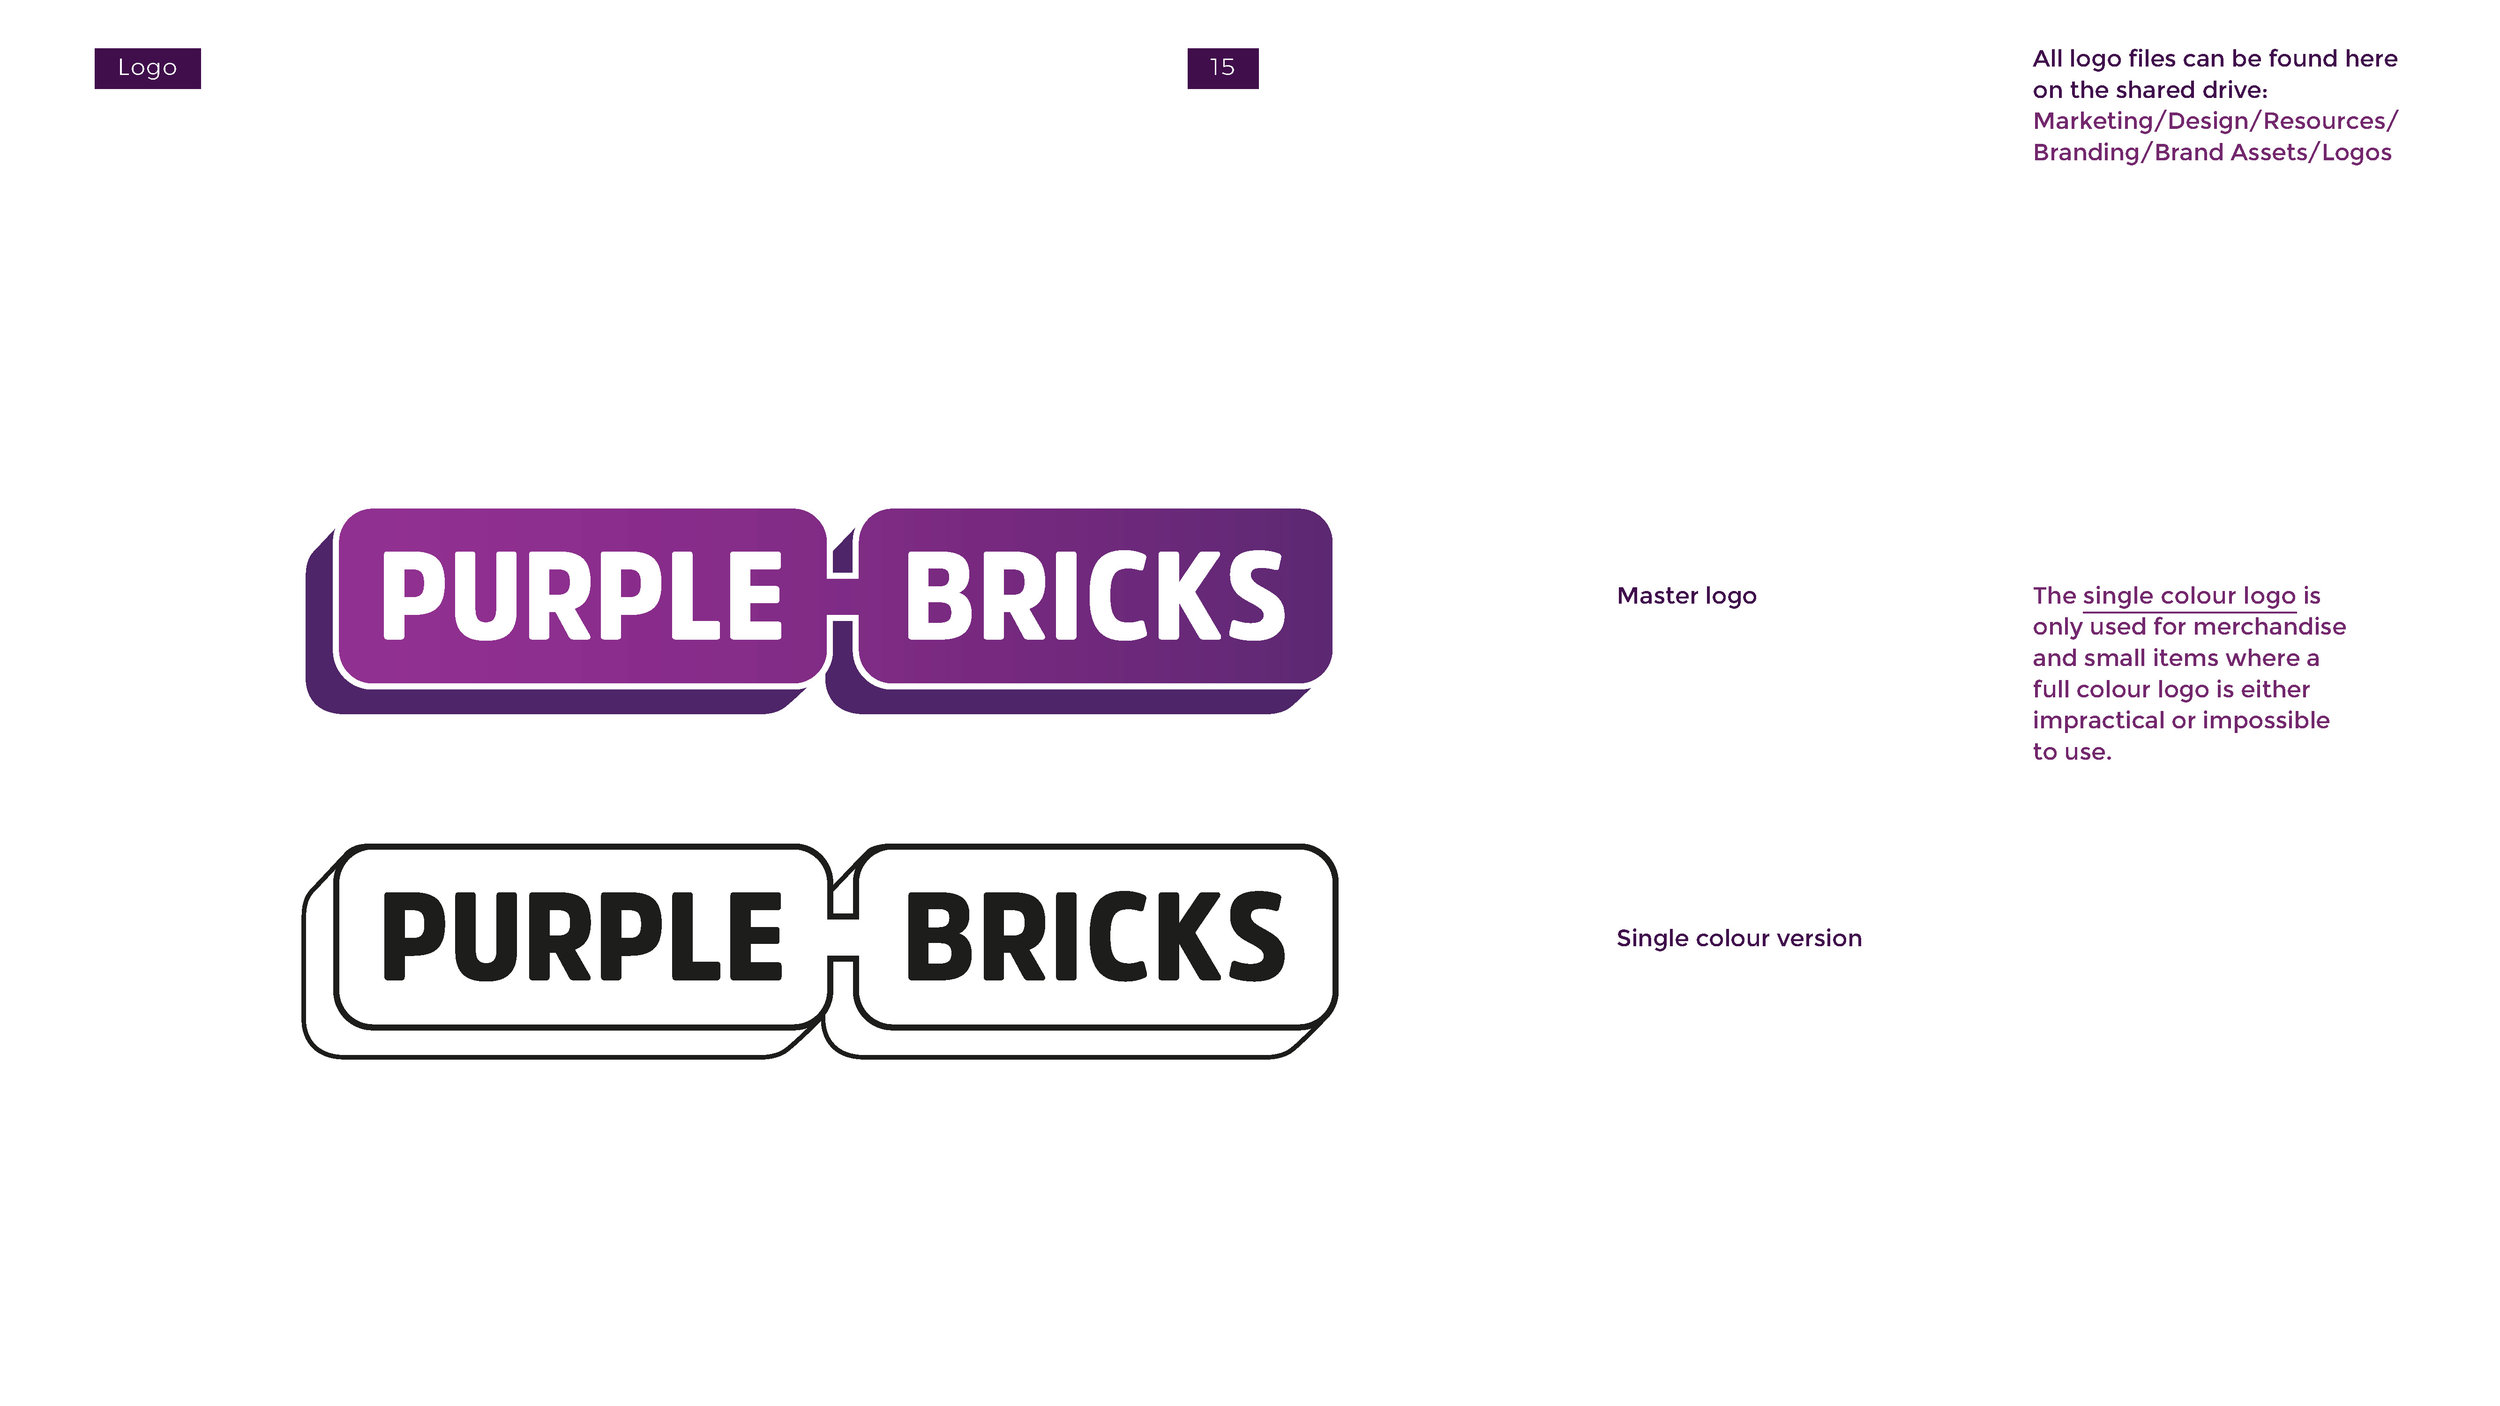 PURPLEBRICKS_GUIDELINES_2_Page_15.jpg